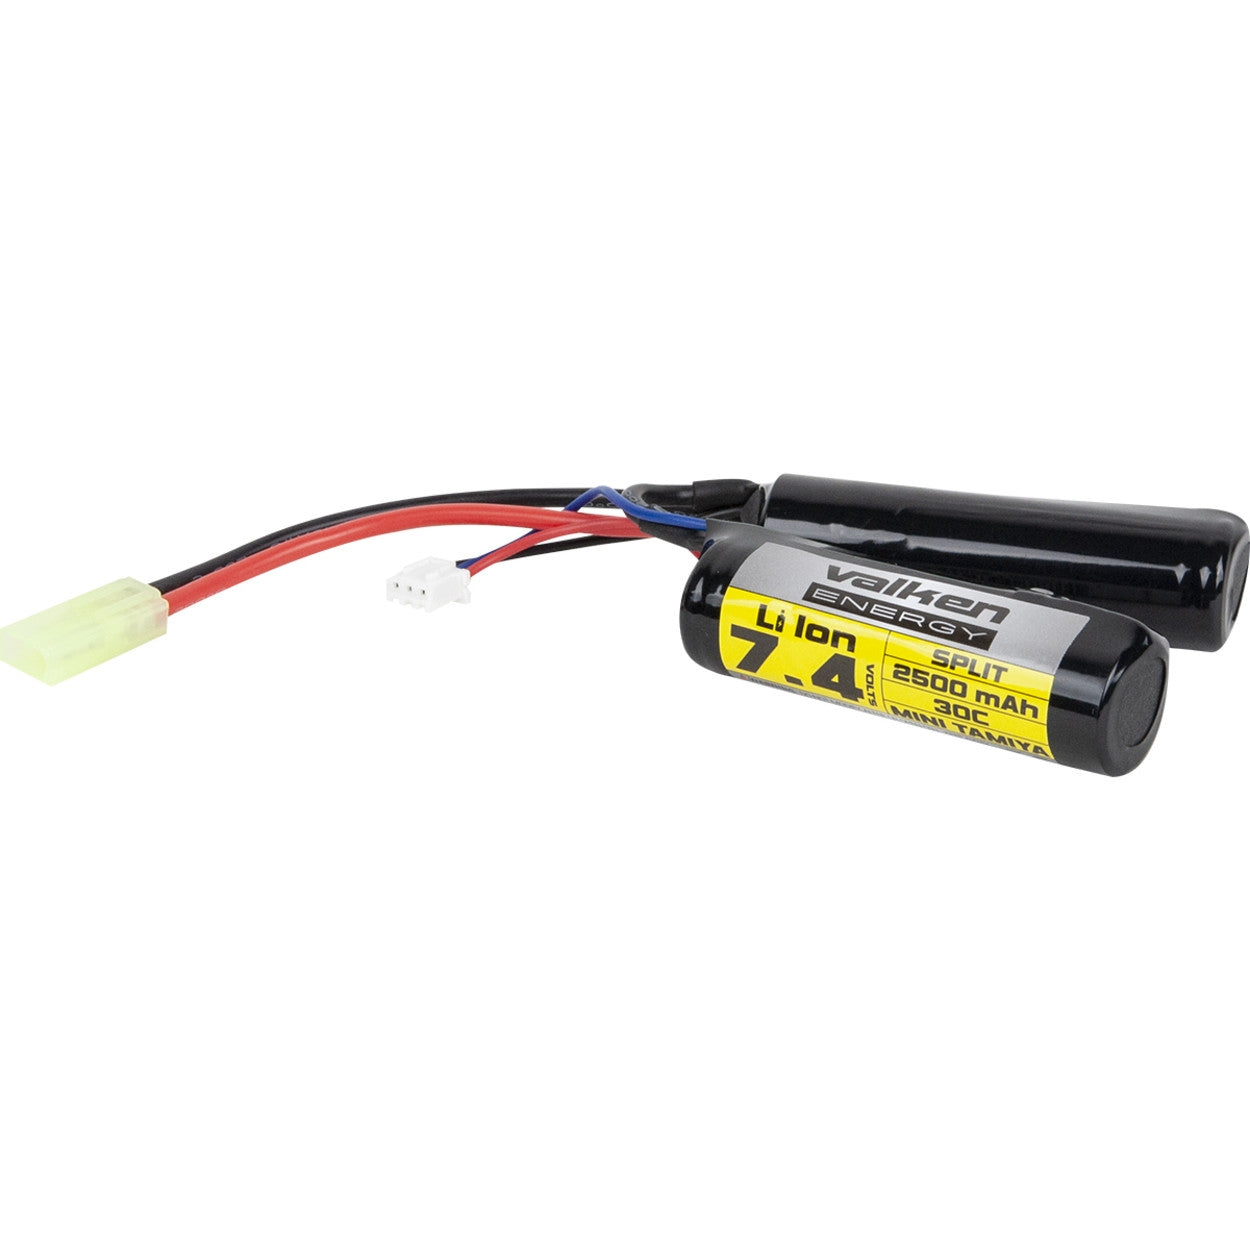 Valken Energy Li-Ion 7.4v 2500mAh Split (High Output)